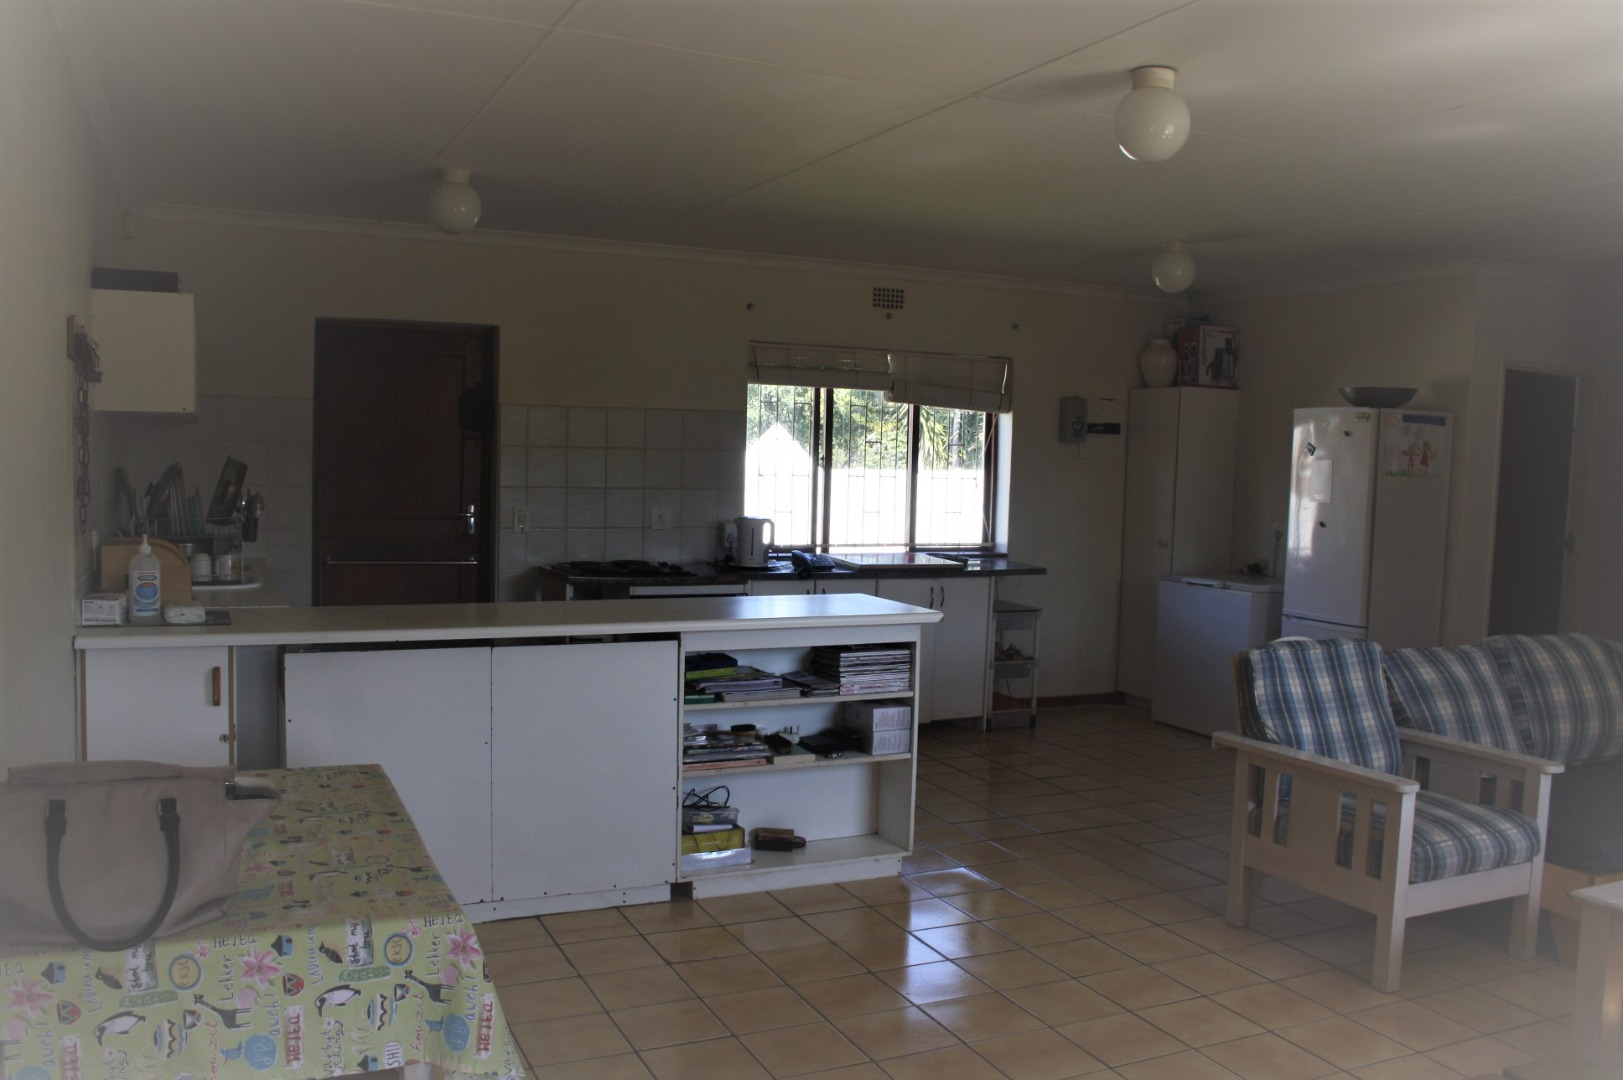 3 Bedroom House For Sale in Kingfisher Creek